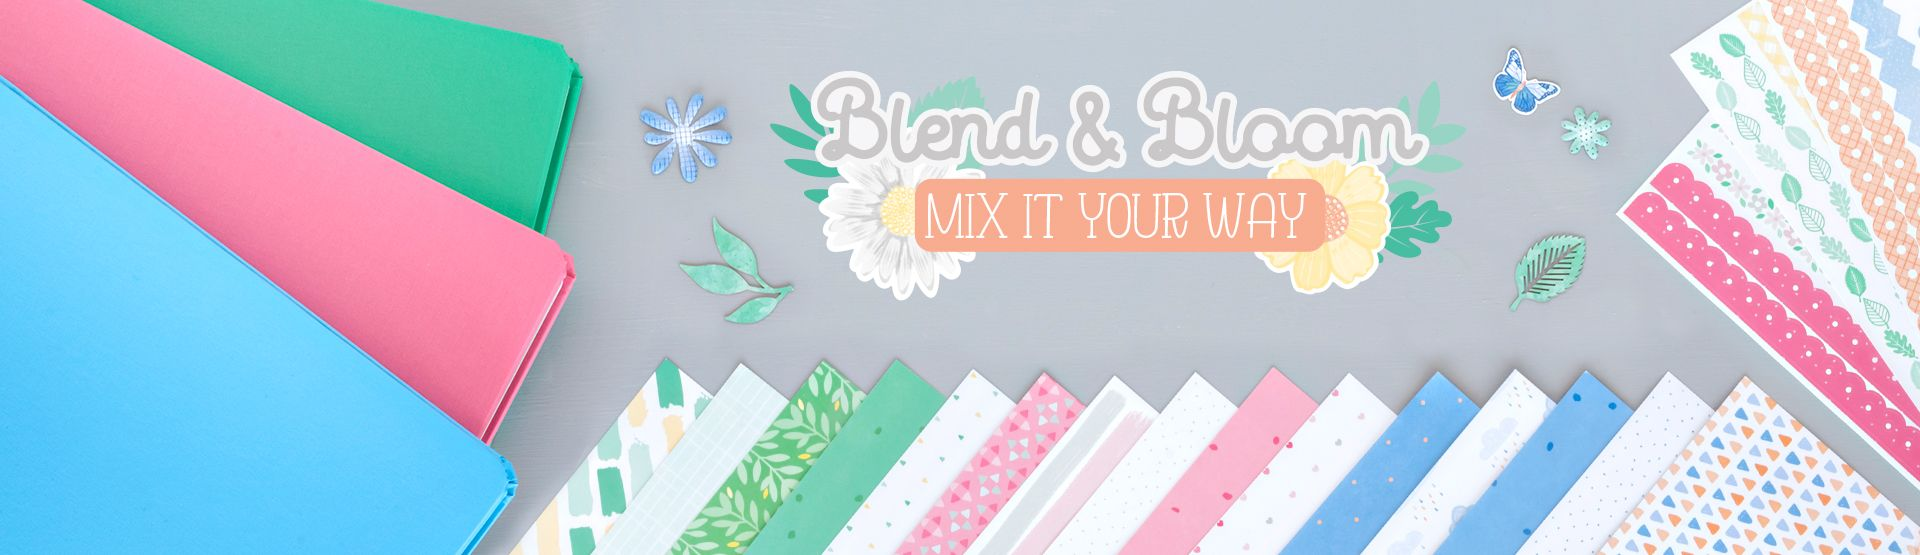 All Occasions & Spring: Blend & Bloom